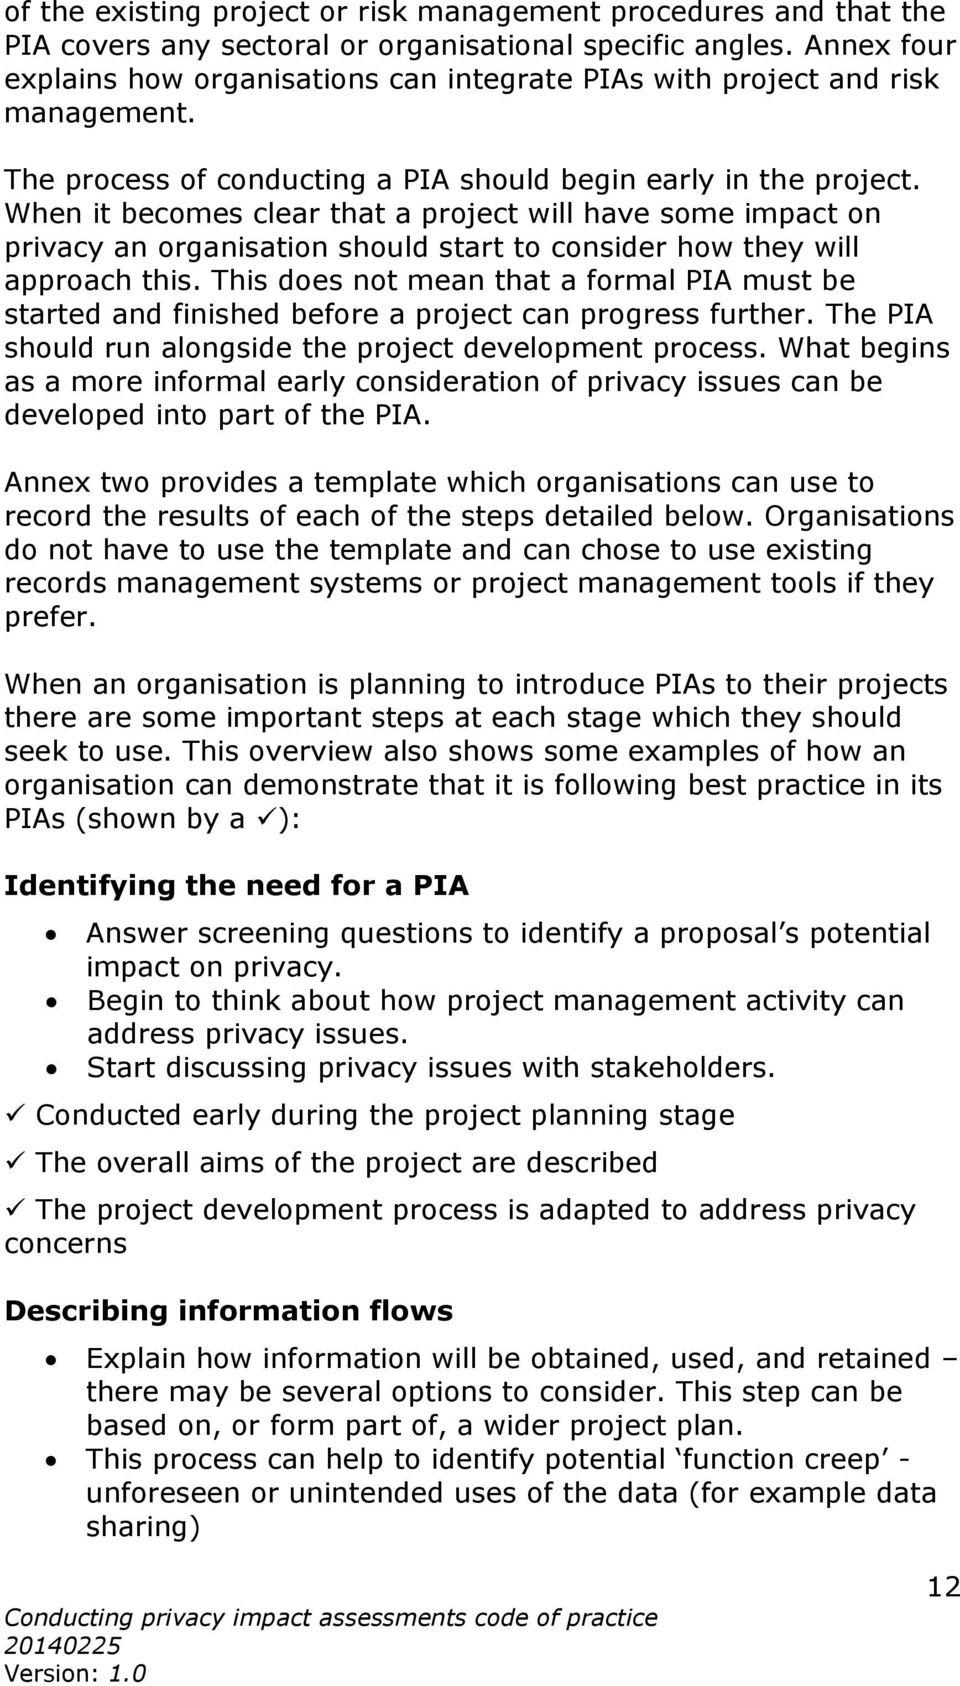 When it becomes clear that a project will have some impact on privacy an organisation should start to consider how they will approach this.